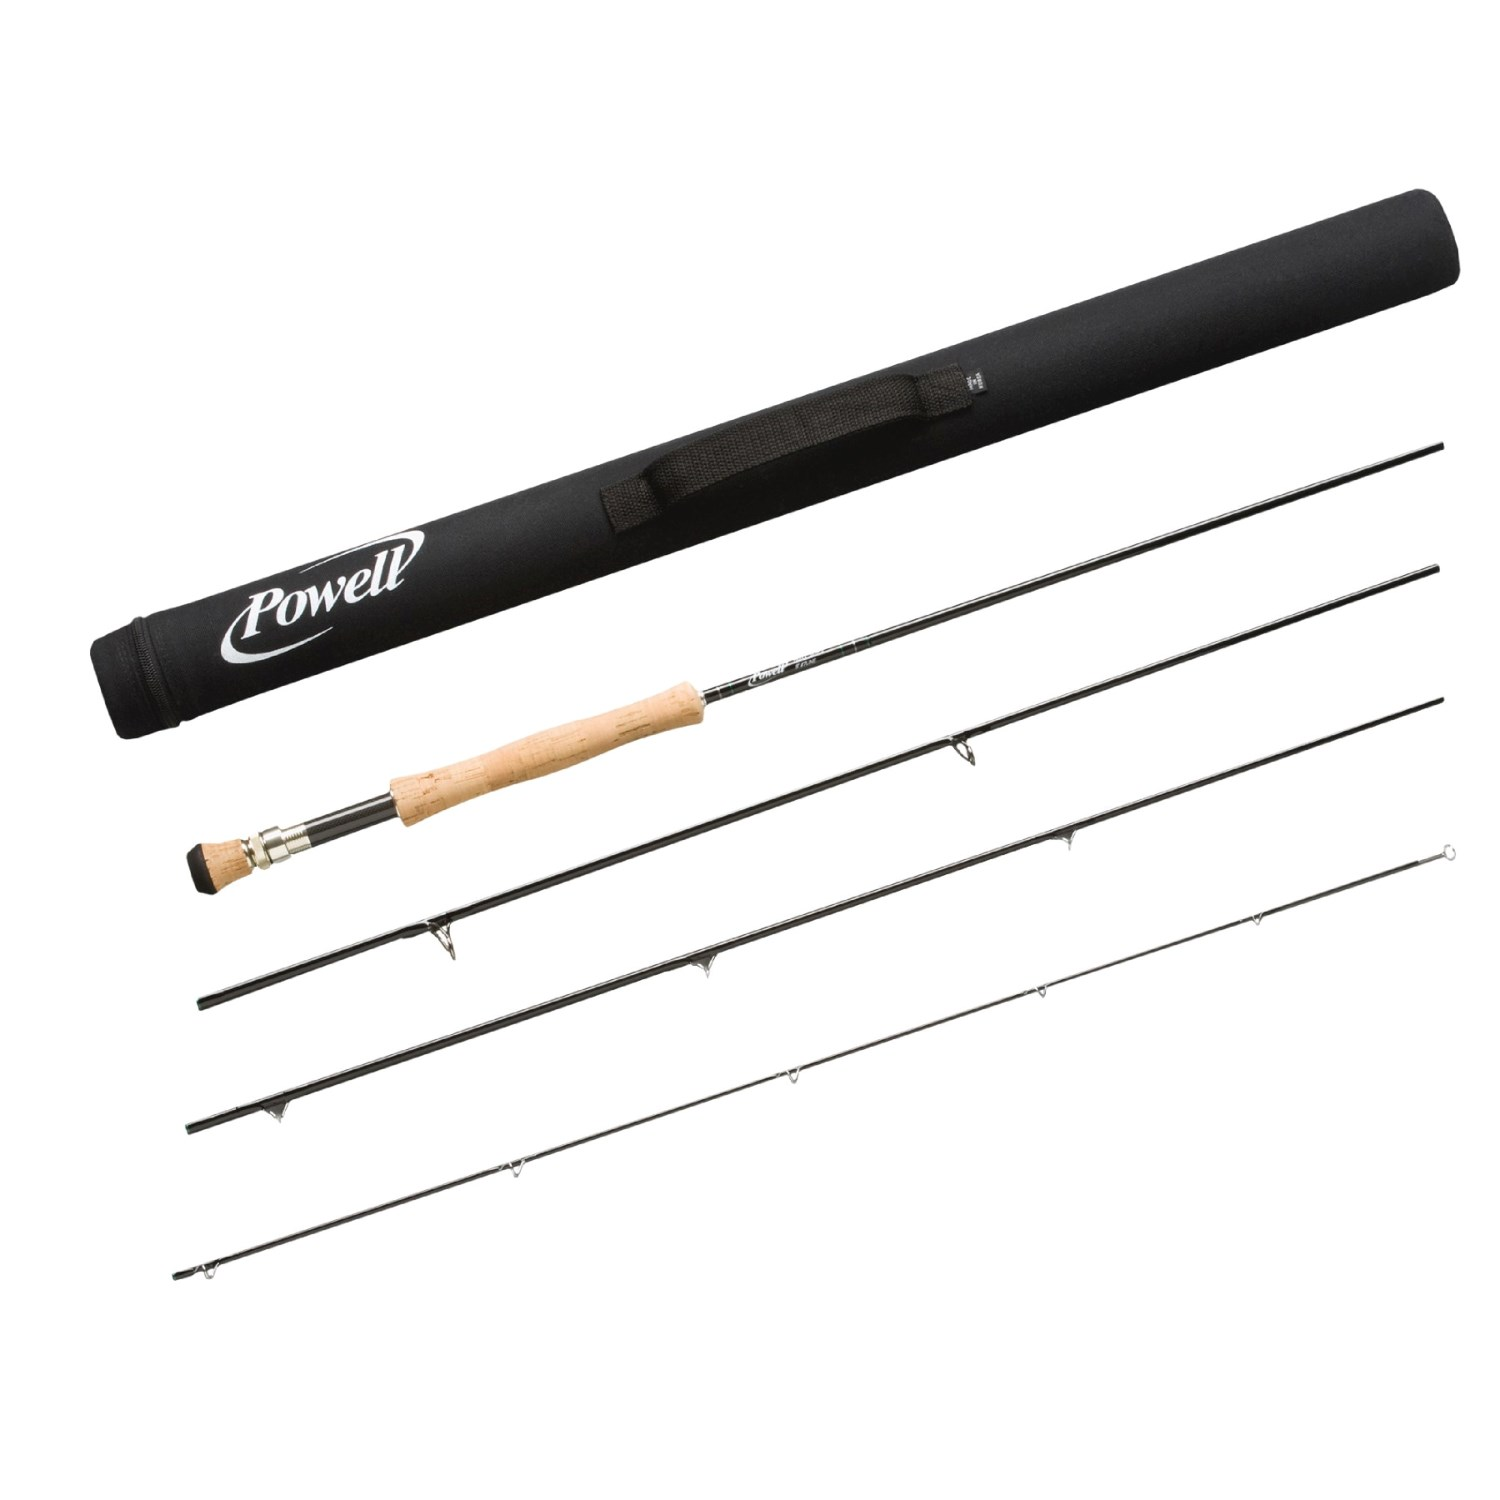 Powell timax fly rod four piece 83604 save 46 for Powell fishing rods